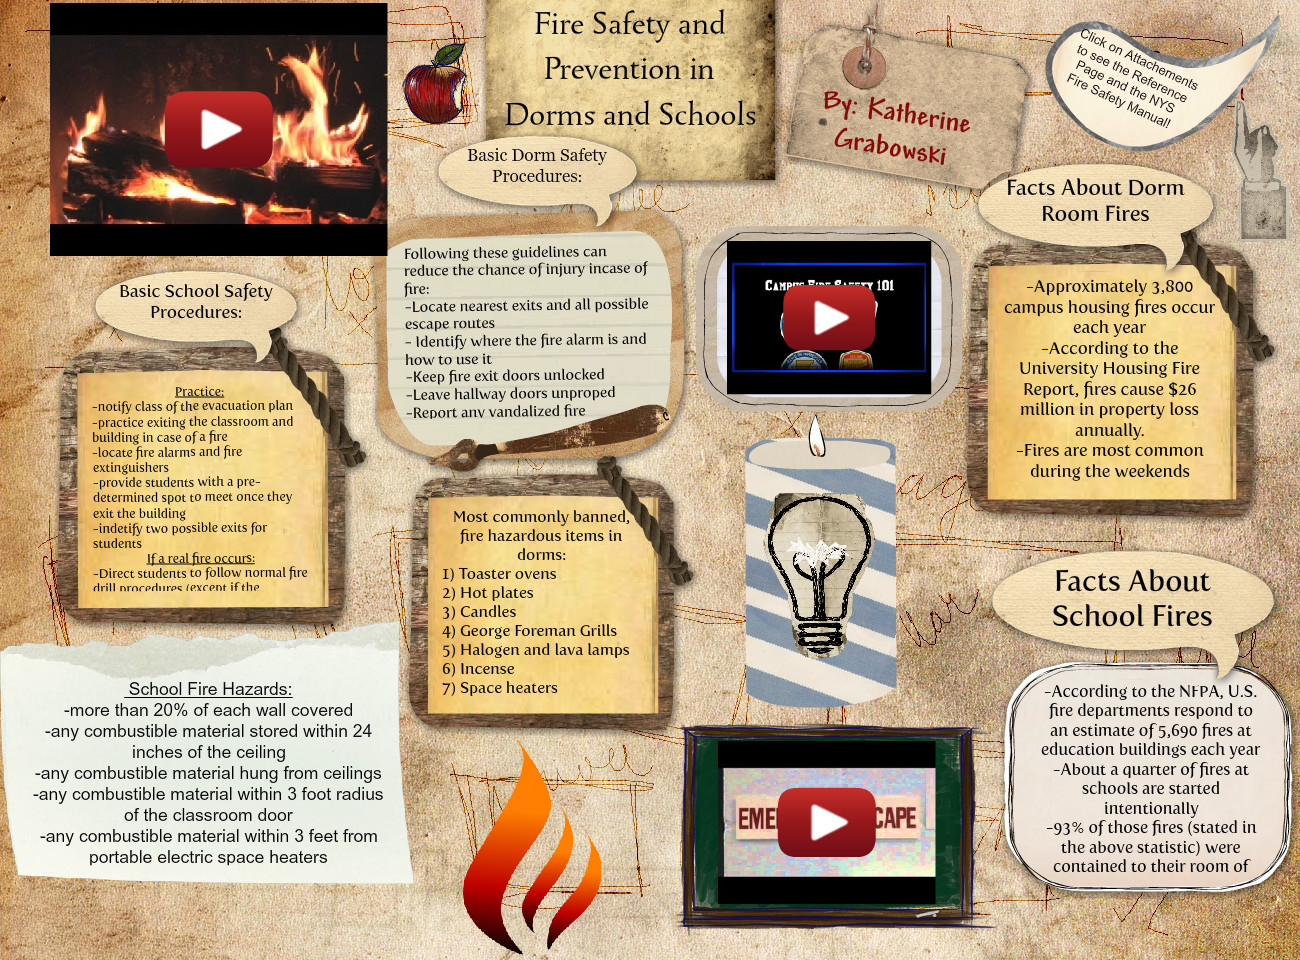 Fire Safety and Prevention in Dorms